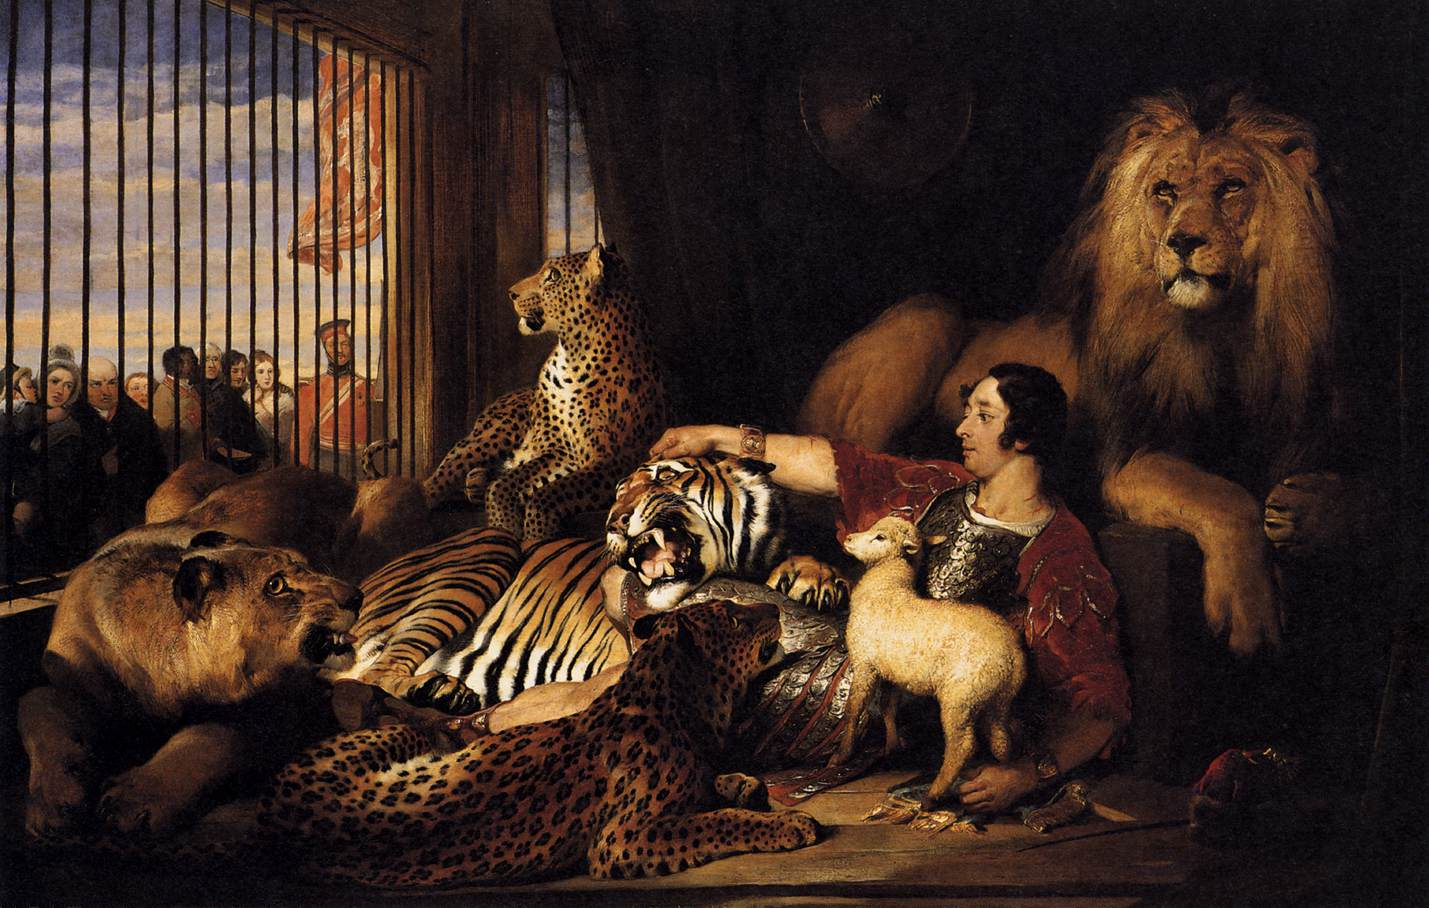 Sir Edwin Henry Landseer (1802-1873): Isaac van Amburgh with his Animals 1839 Öl auf Leinwand, 113 x 175 cm Royal Collection, Windsor